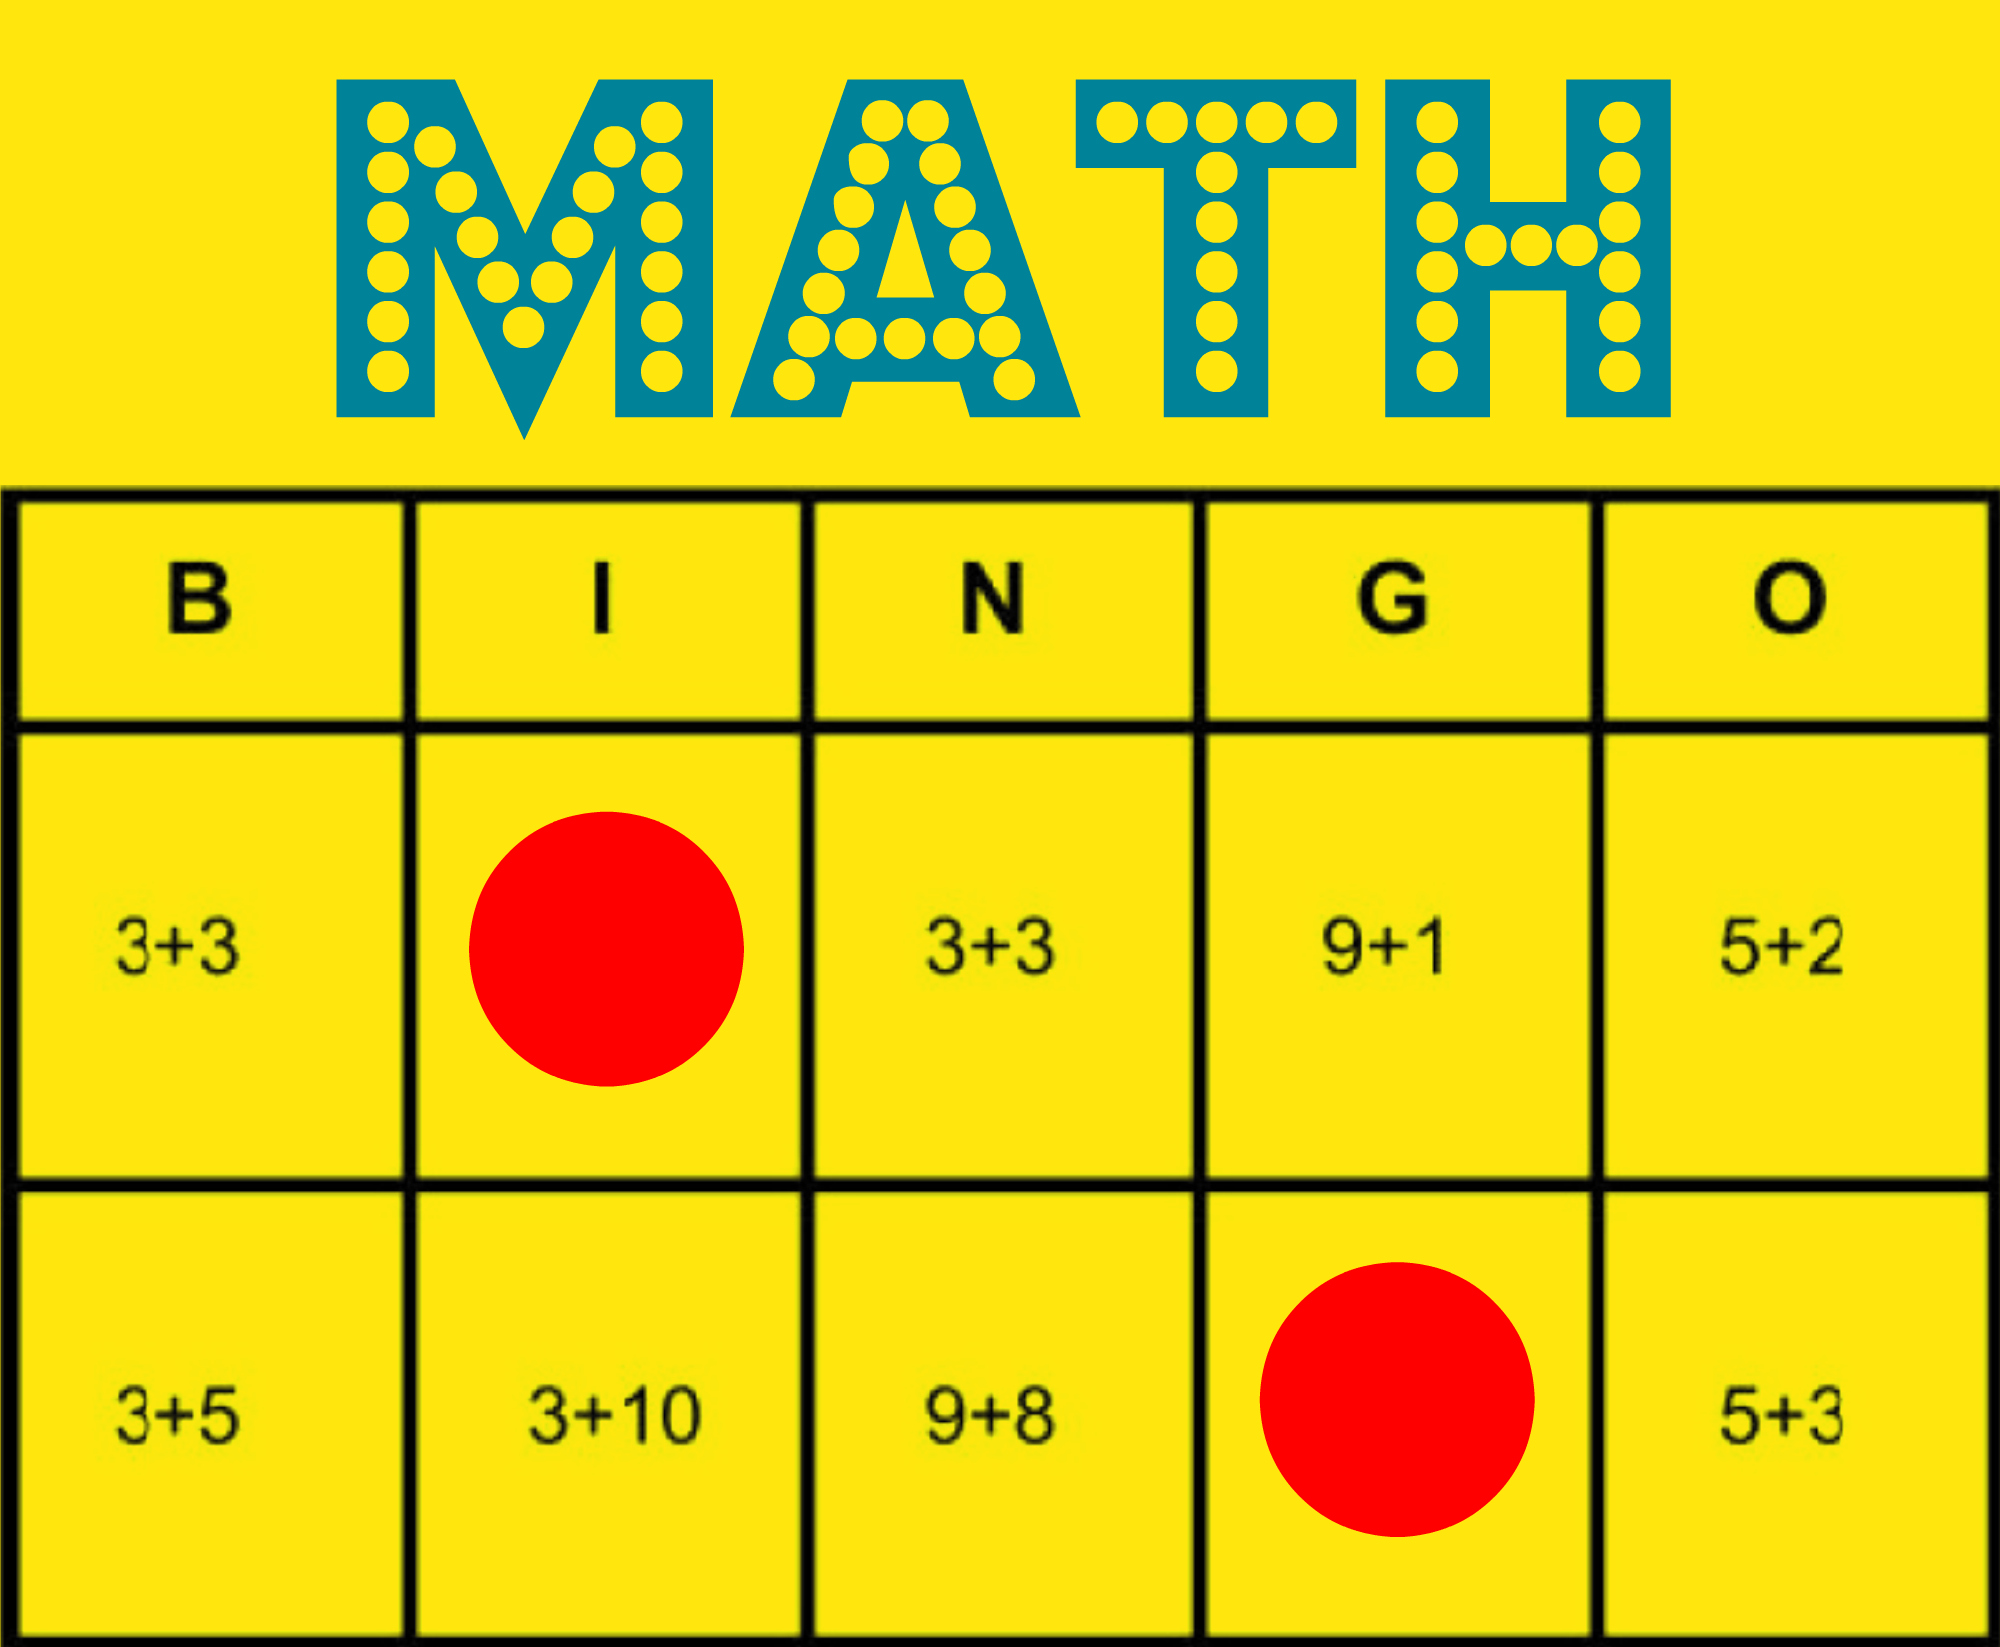 picture relating to Multiplication Game Printable called Math Bingo: Absolutely free Printable Video game toward Support All Pupils Study